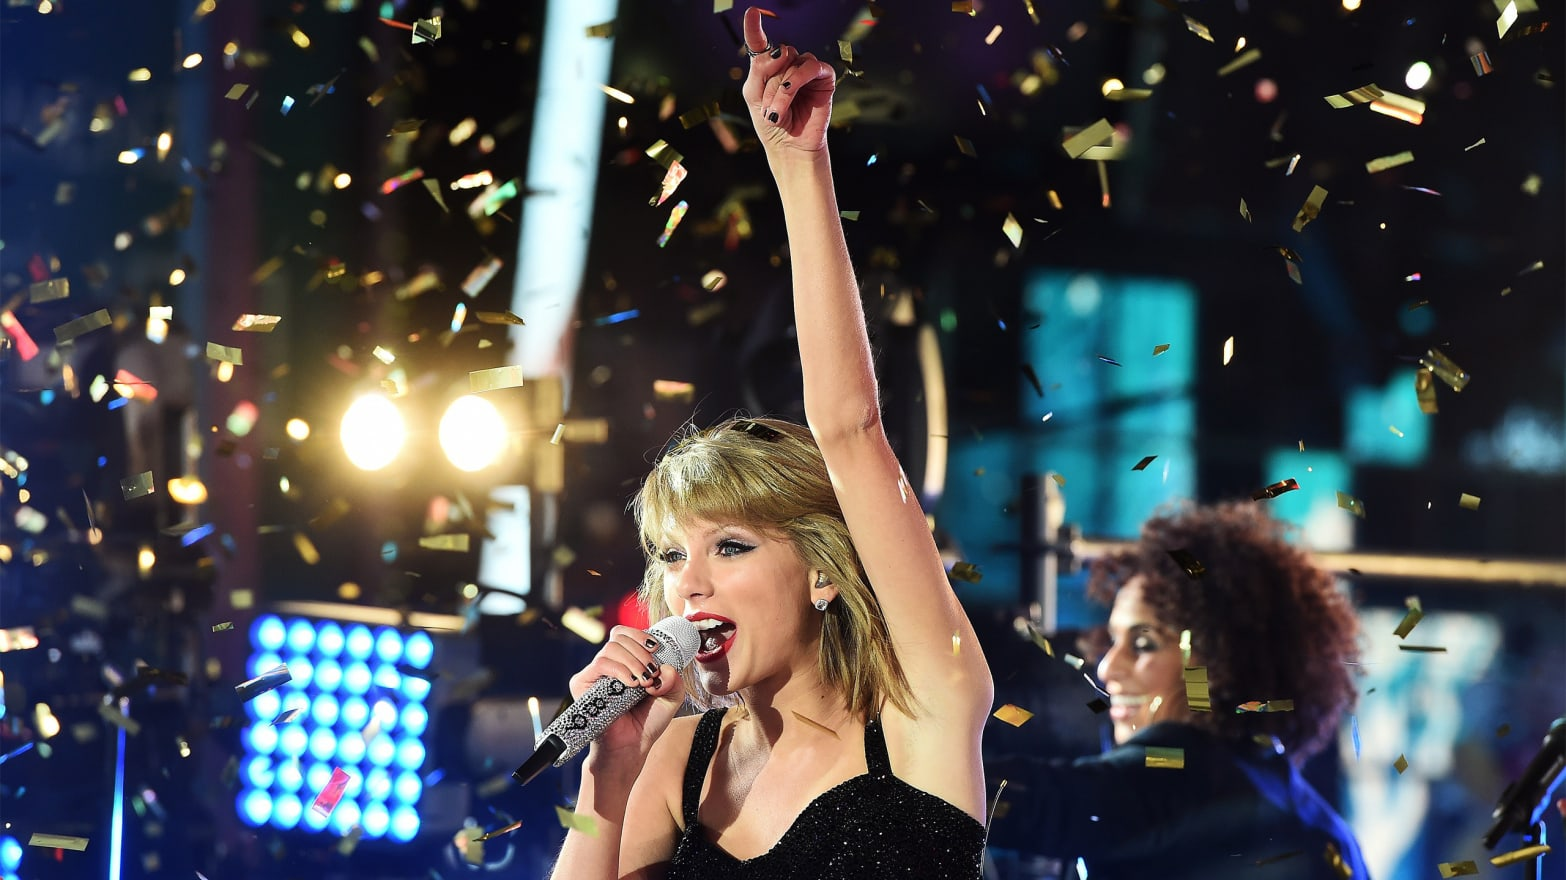 Watch Taylor Swift and Alanis Morissette's Killer 'You Oughta Know' Duet